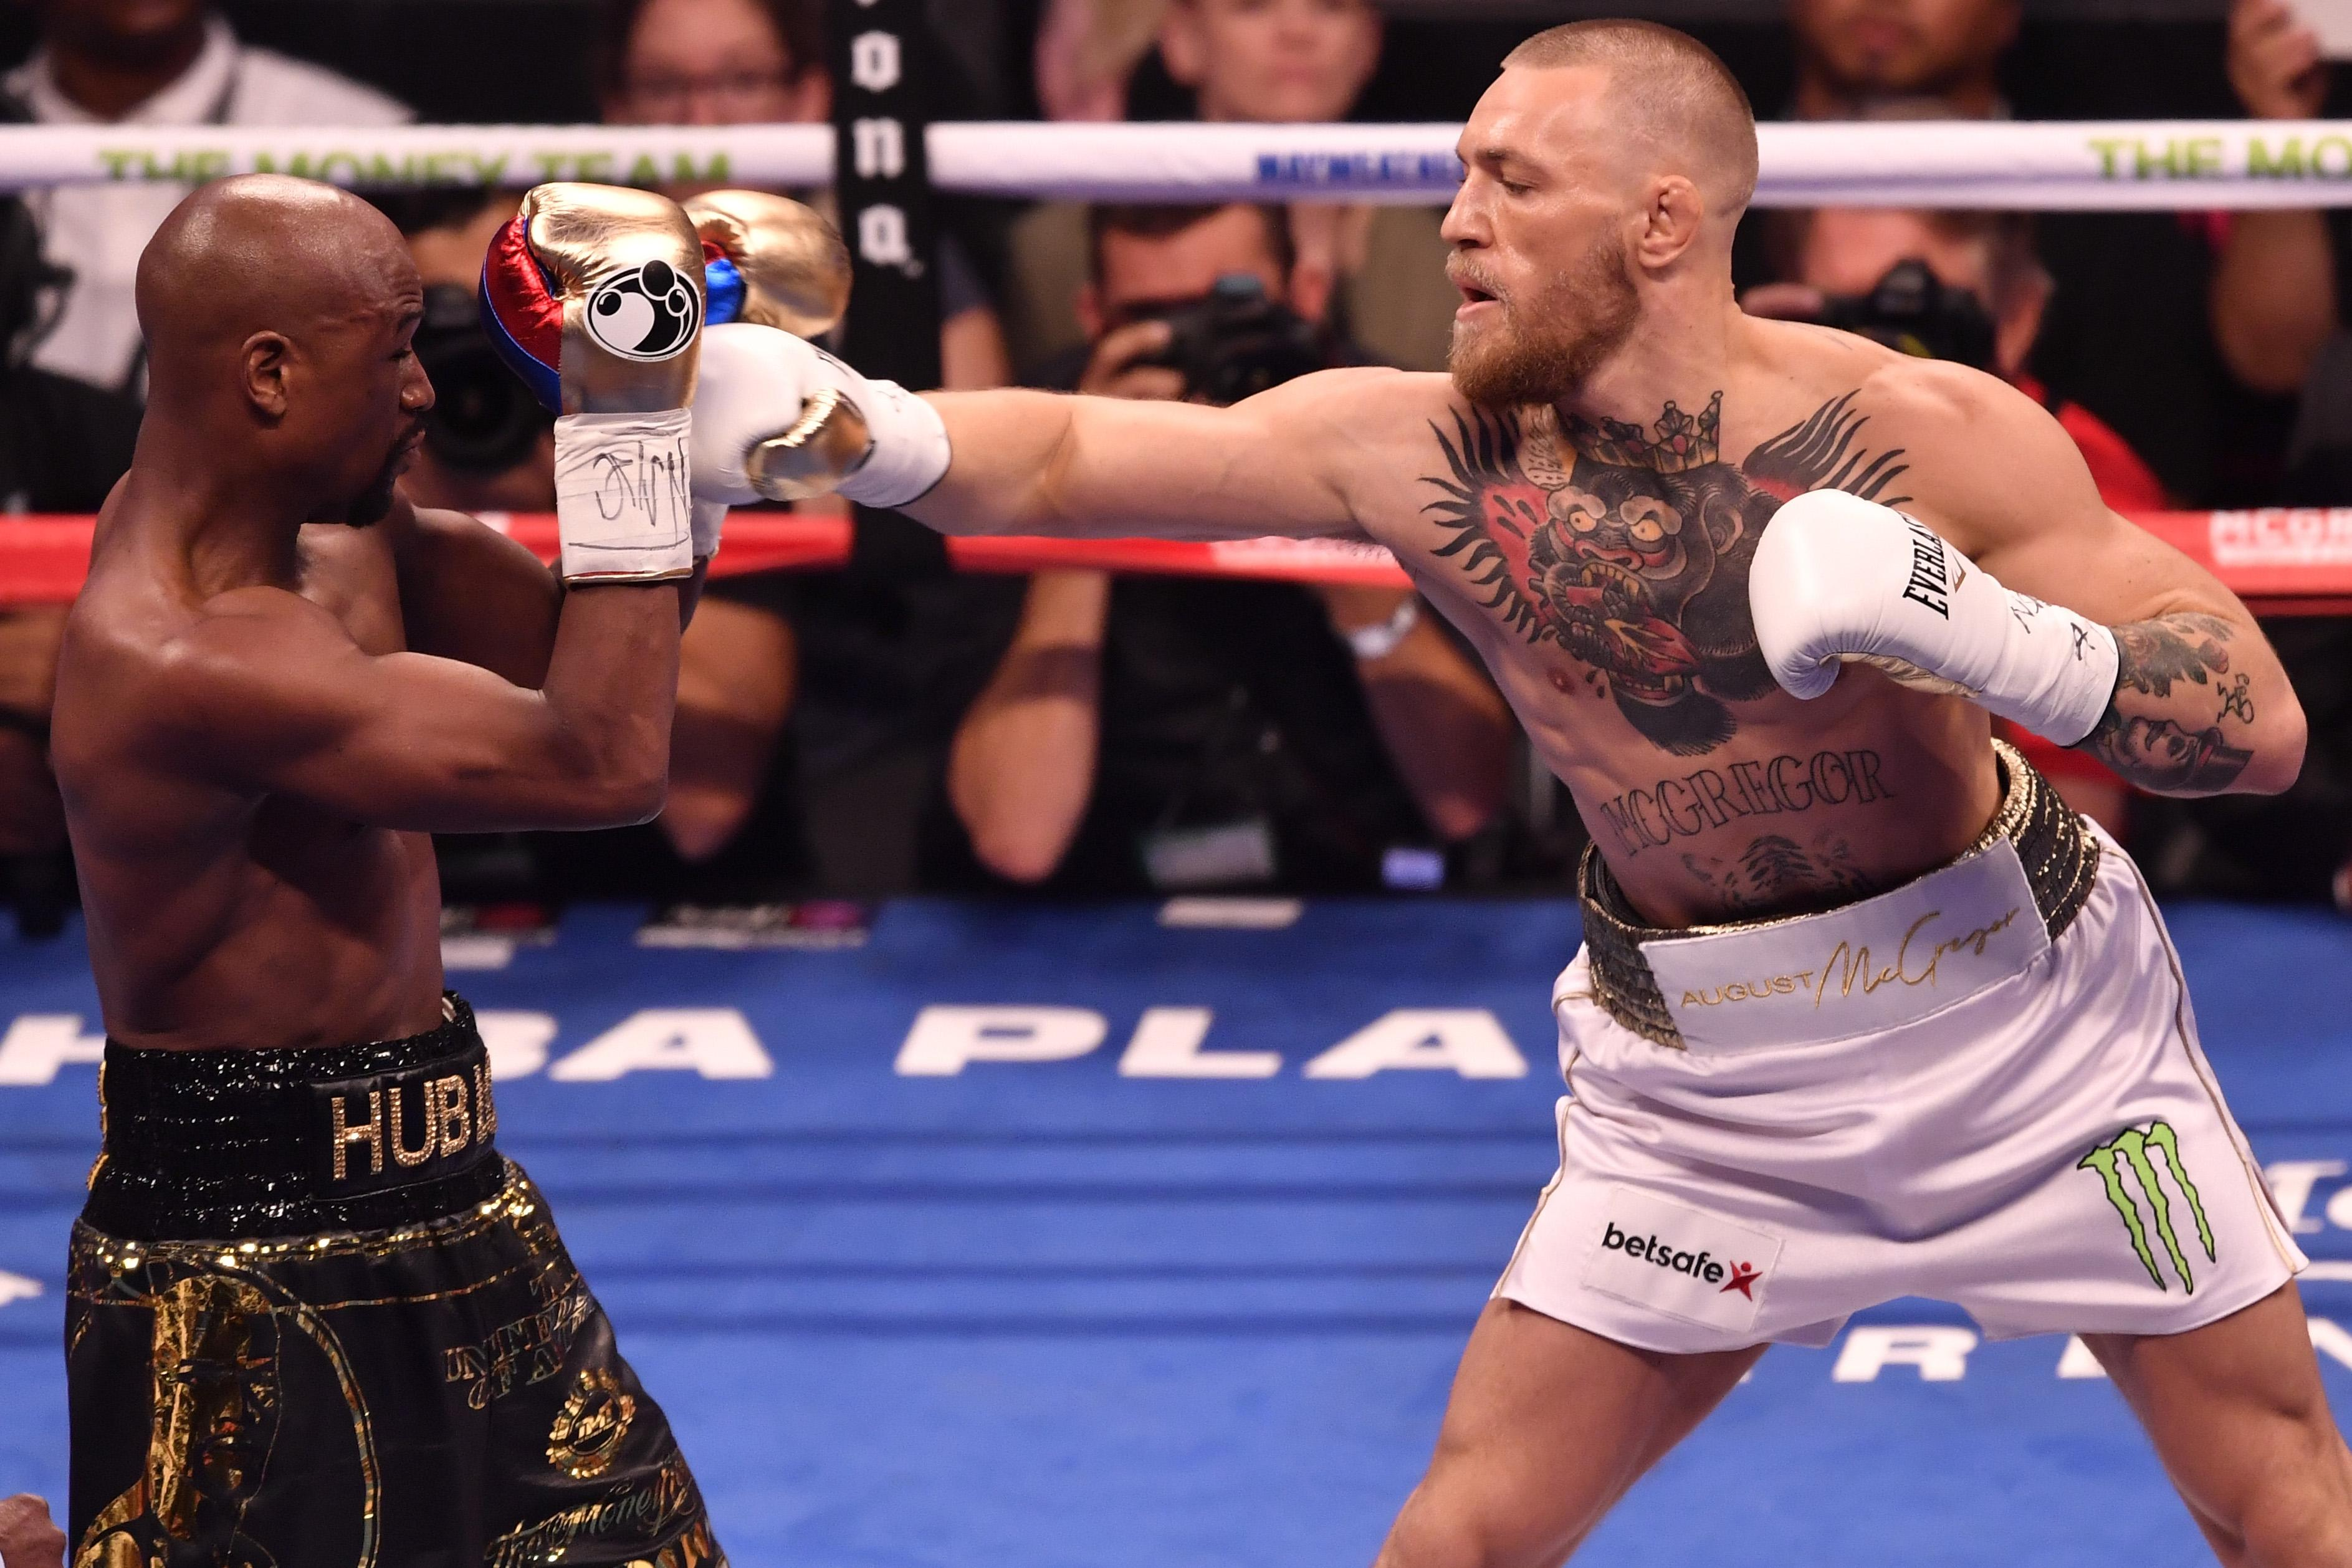 Conor McGregor fought Floyd Mayweather on August 21, 2016